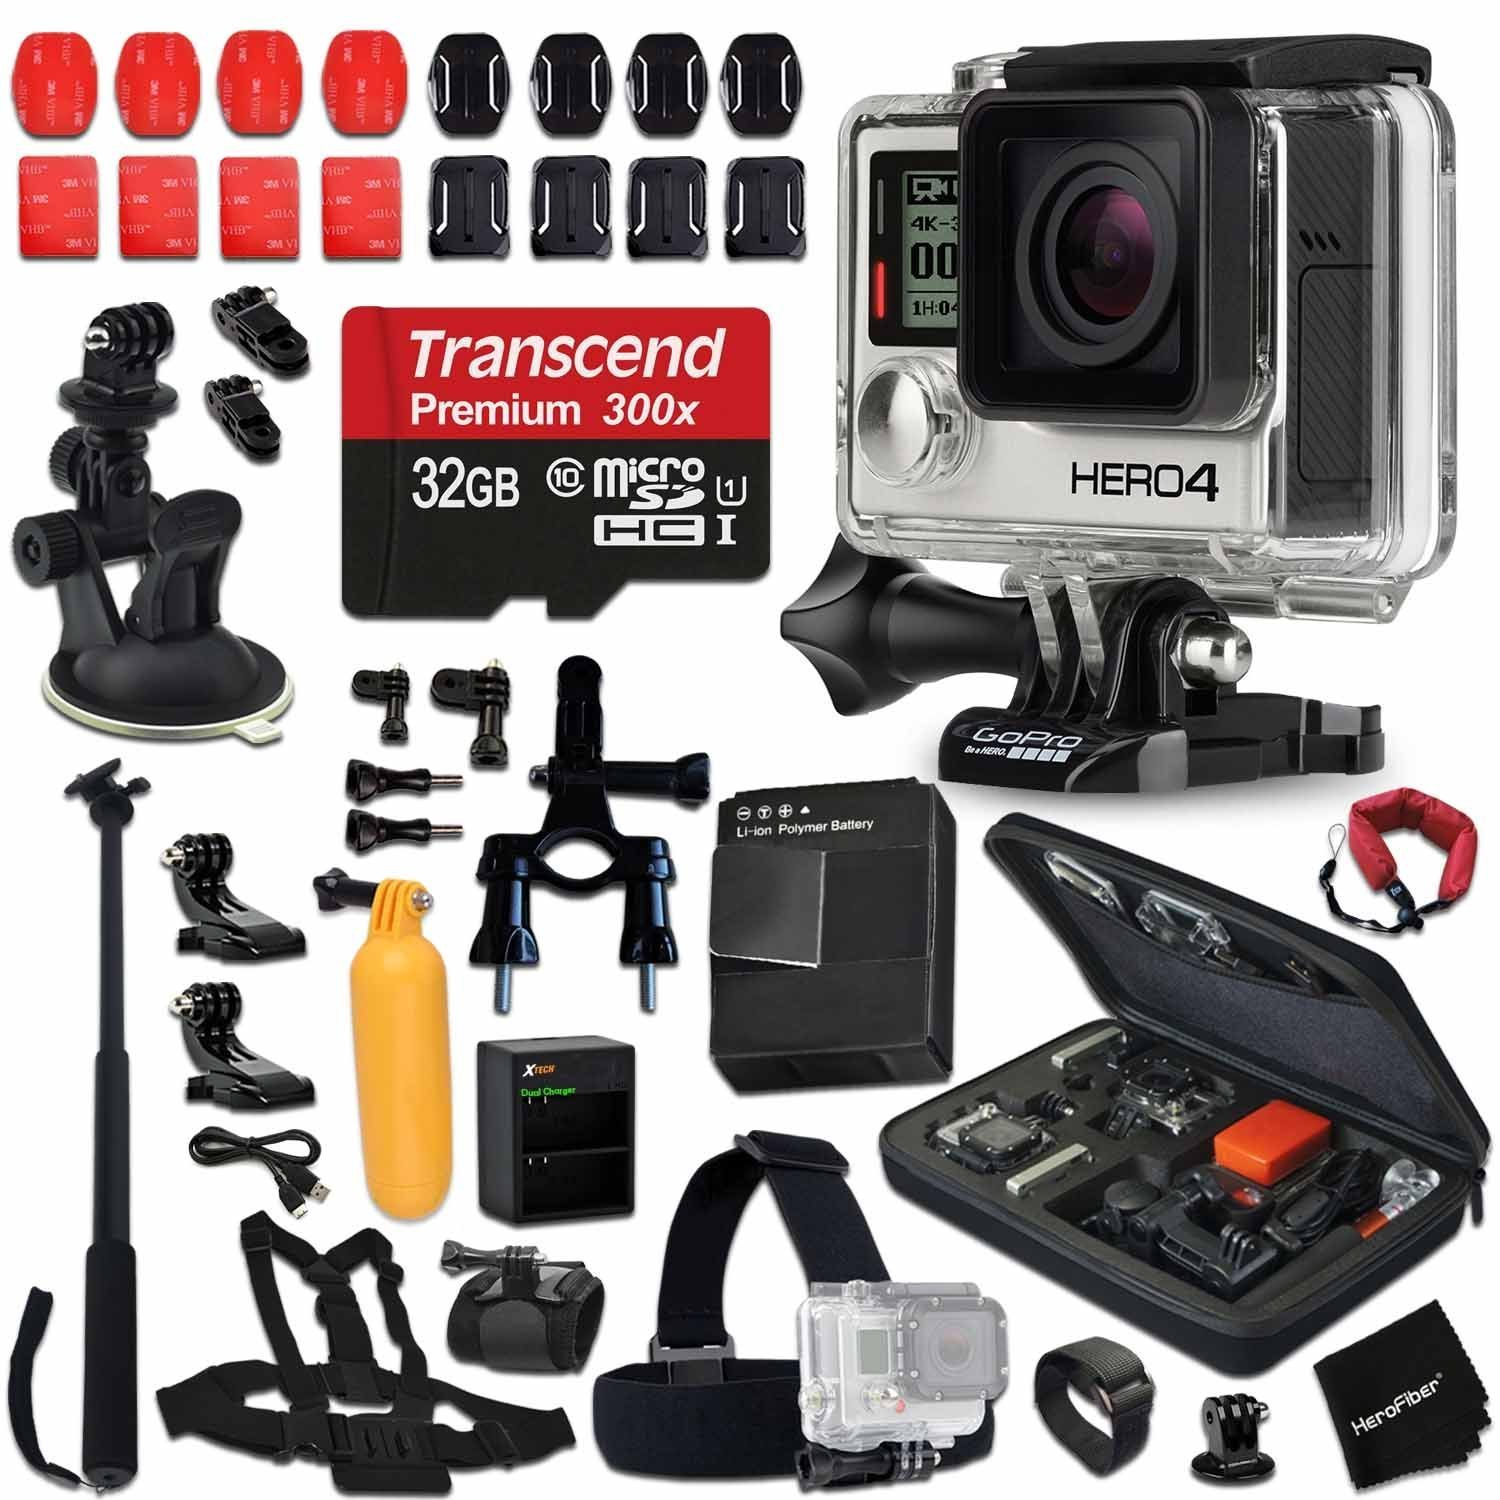 GoPro Hero 4 BLACK Edition Camera KIT + 32GB High-Speed Memory Card + AHDBT-401 Battery + Dual charger + Custom Fitted Case + Car Mount + Head Strap + Chest Strap + Selfie Stick + Bike Mount + MORE by HeroFiber